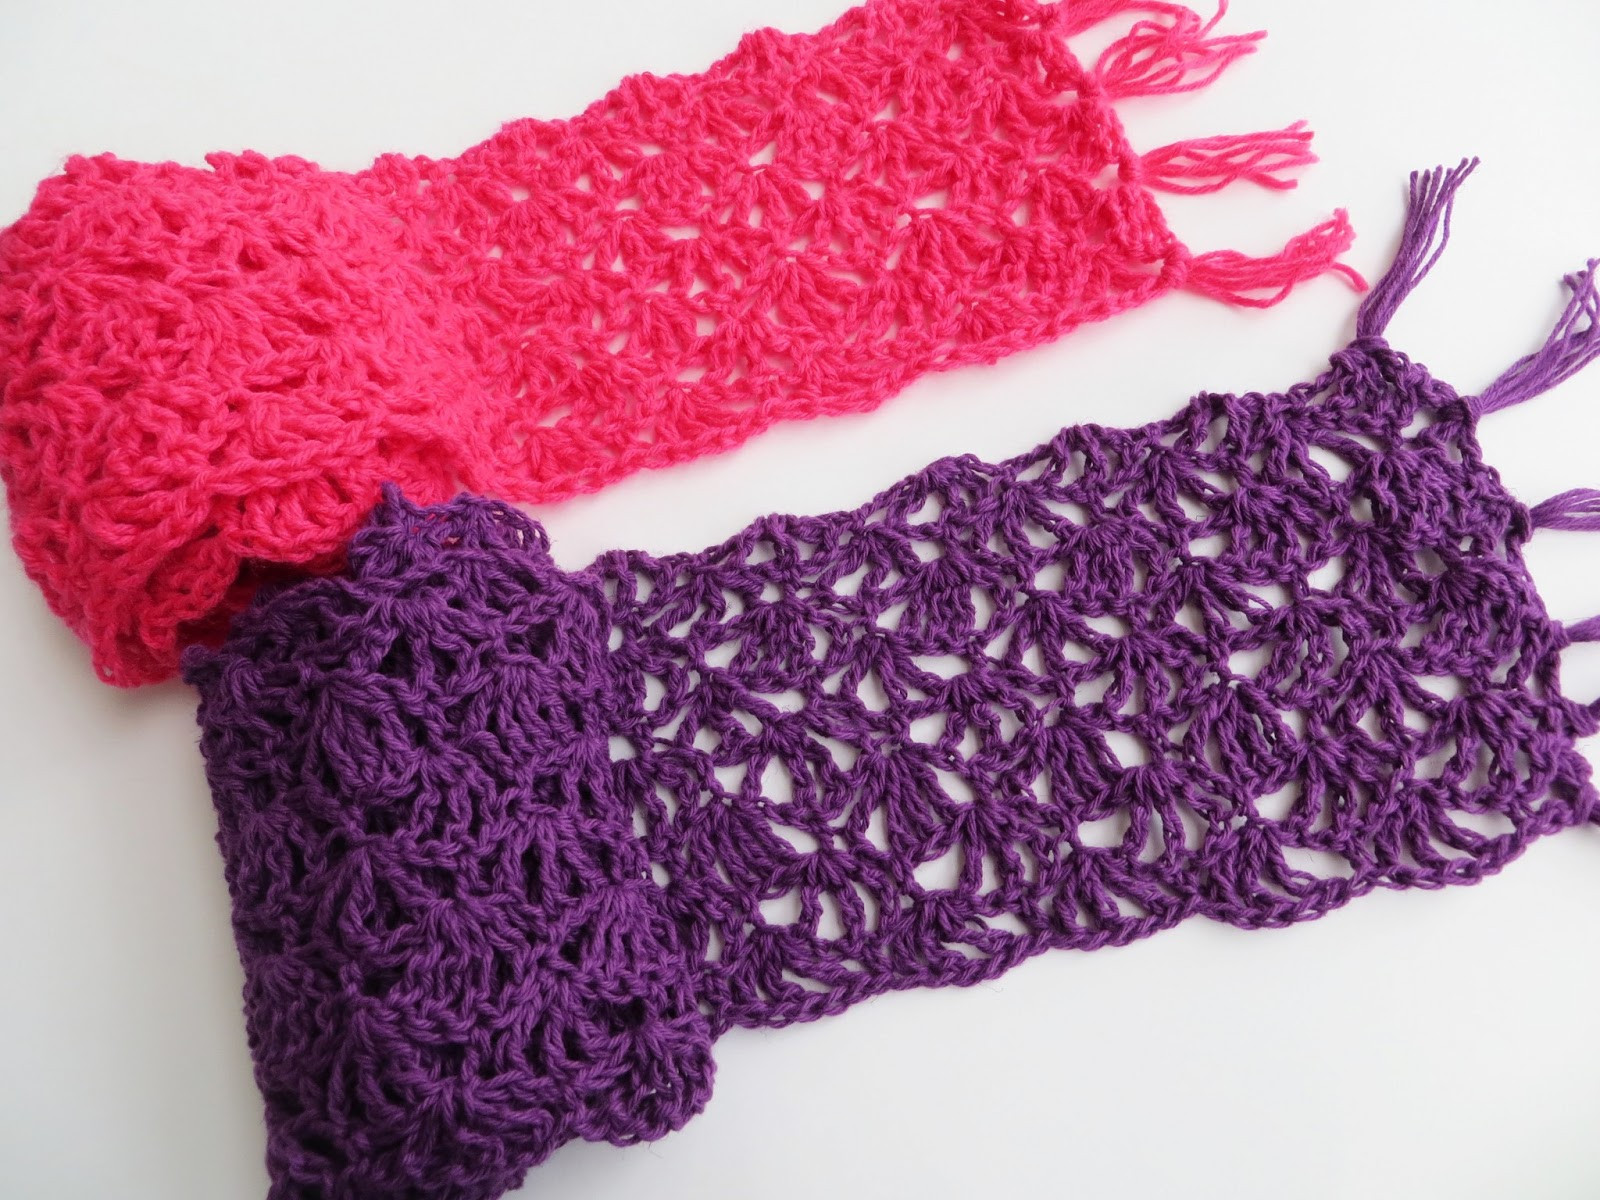 Best Of How to Crochet A Scarf for Beginners Step by Step Slowly Crochet Scarf Patterns for Beginners Of Perfect 47 Pictures Crochet Scarf Patterns for Beginners